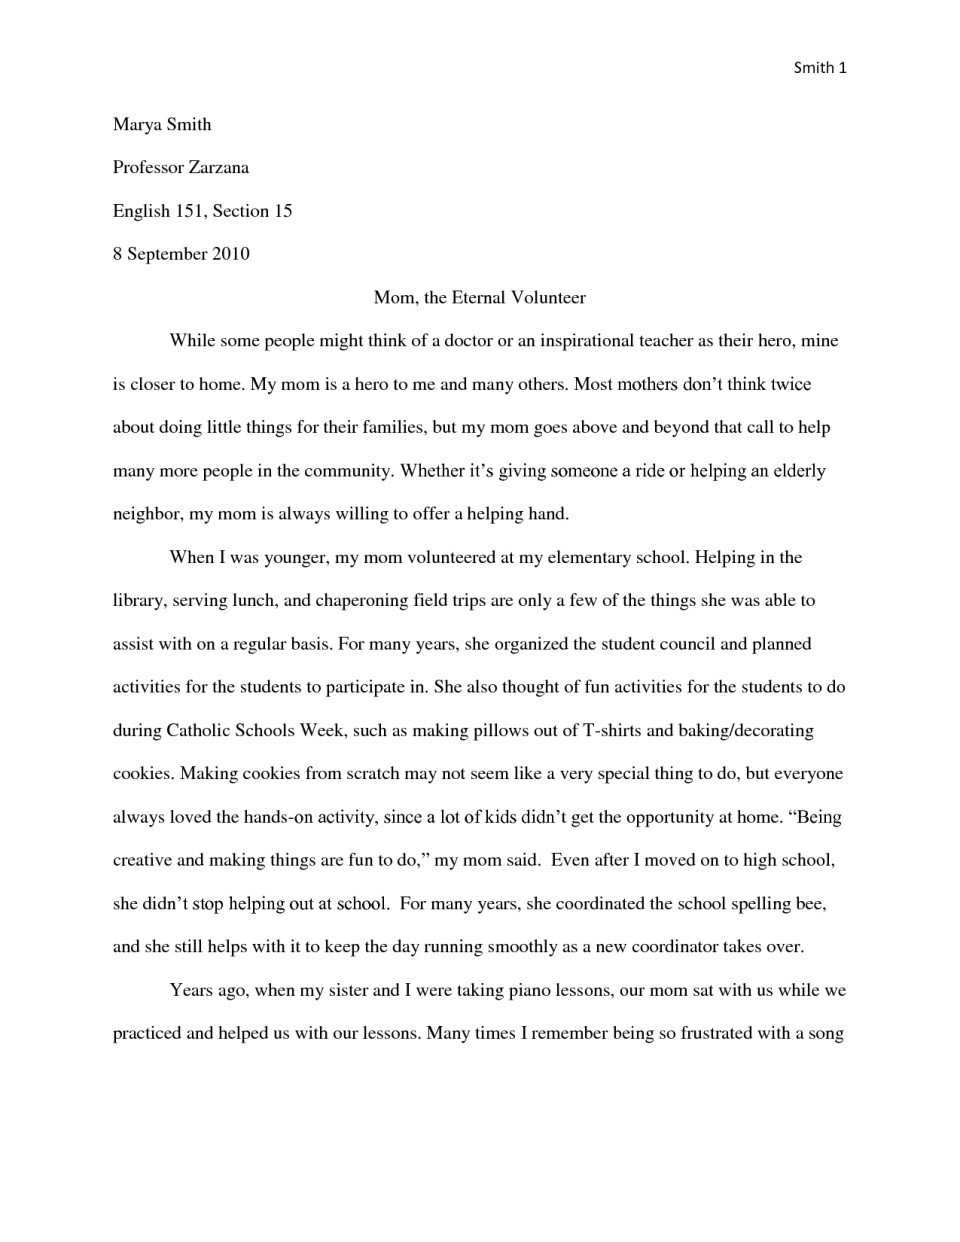 012 Essay Example My Hero Mom Essays Template Heroism About